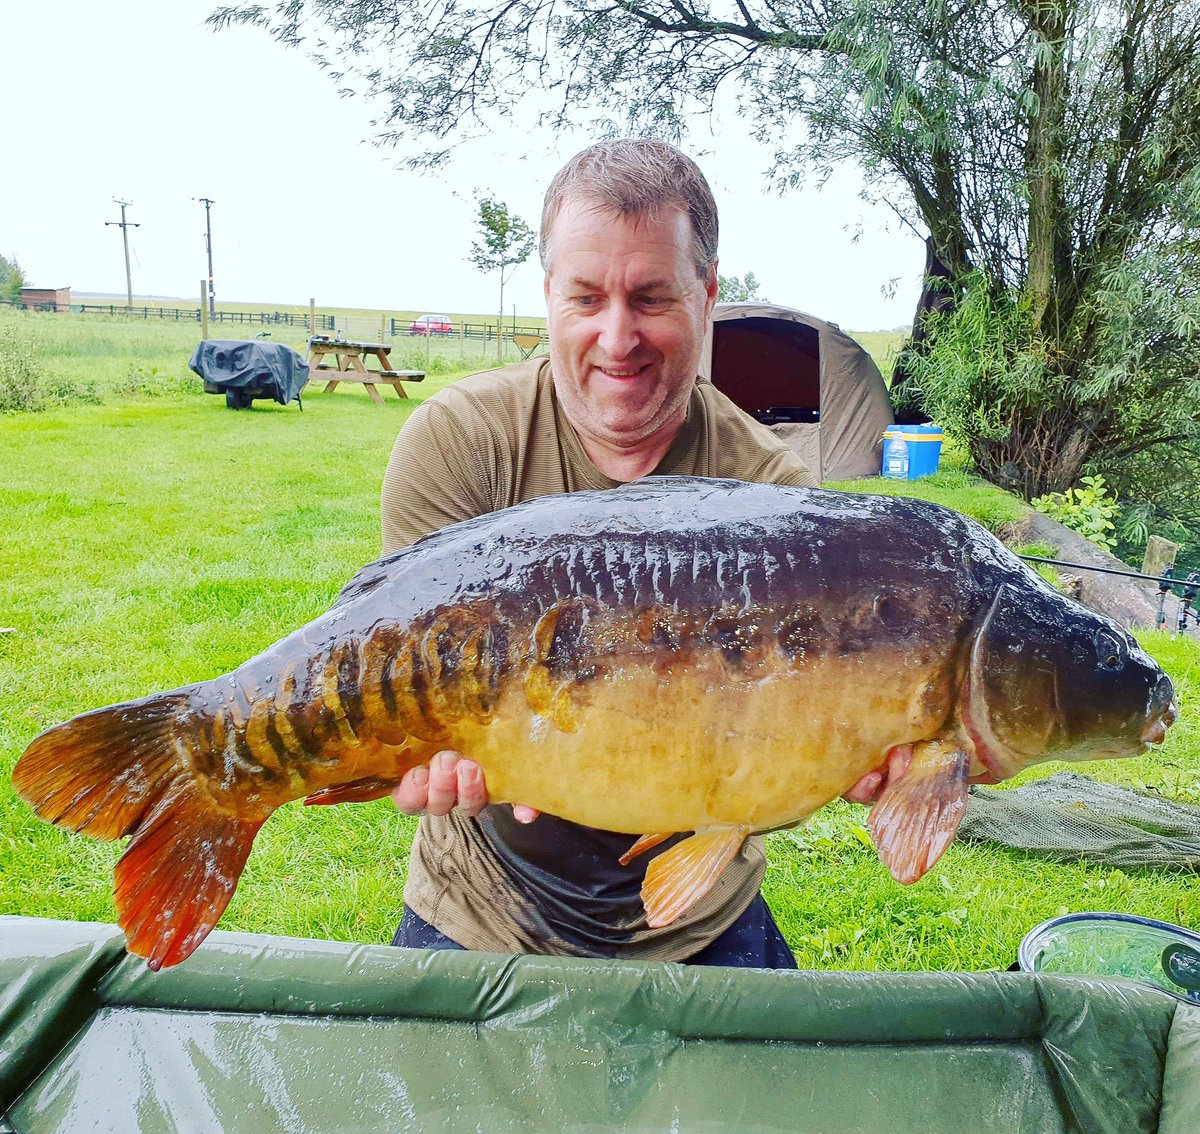 Stunning <b>Mirror Carp</b> from Newhay Lakes #mirrorcarp #carp #carpfishing #craftycatcher @craftyc